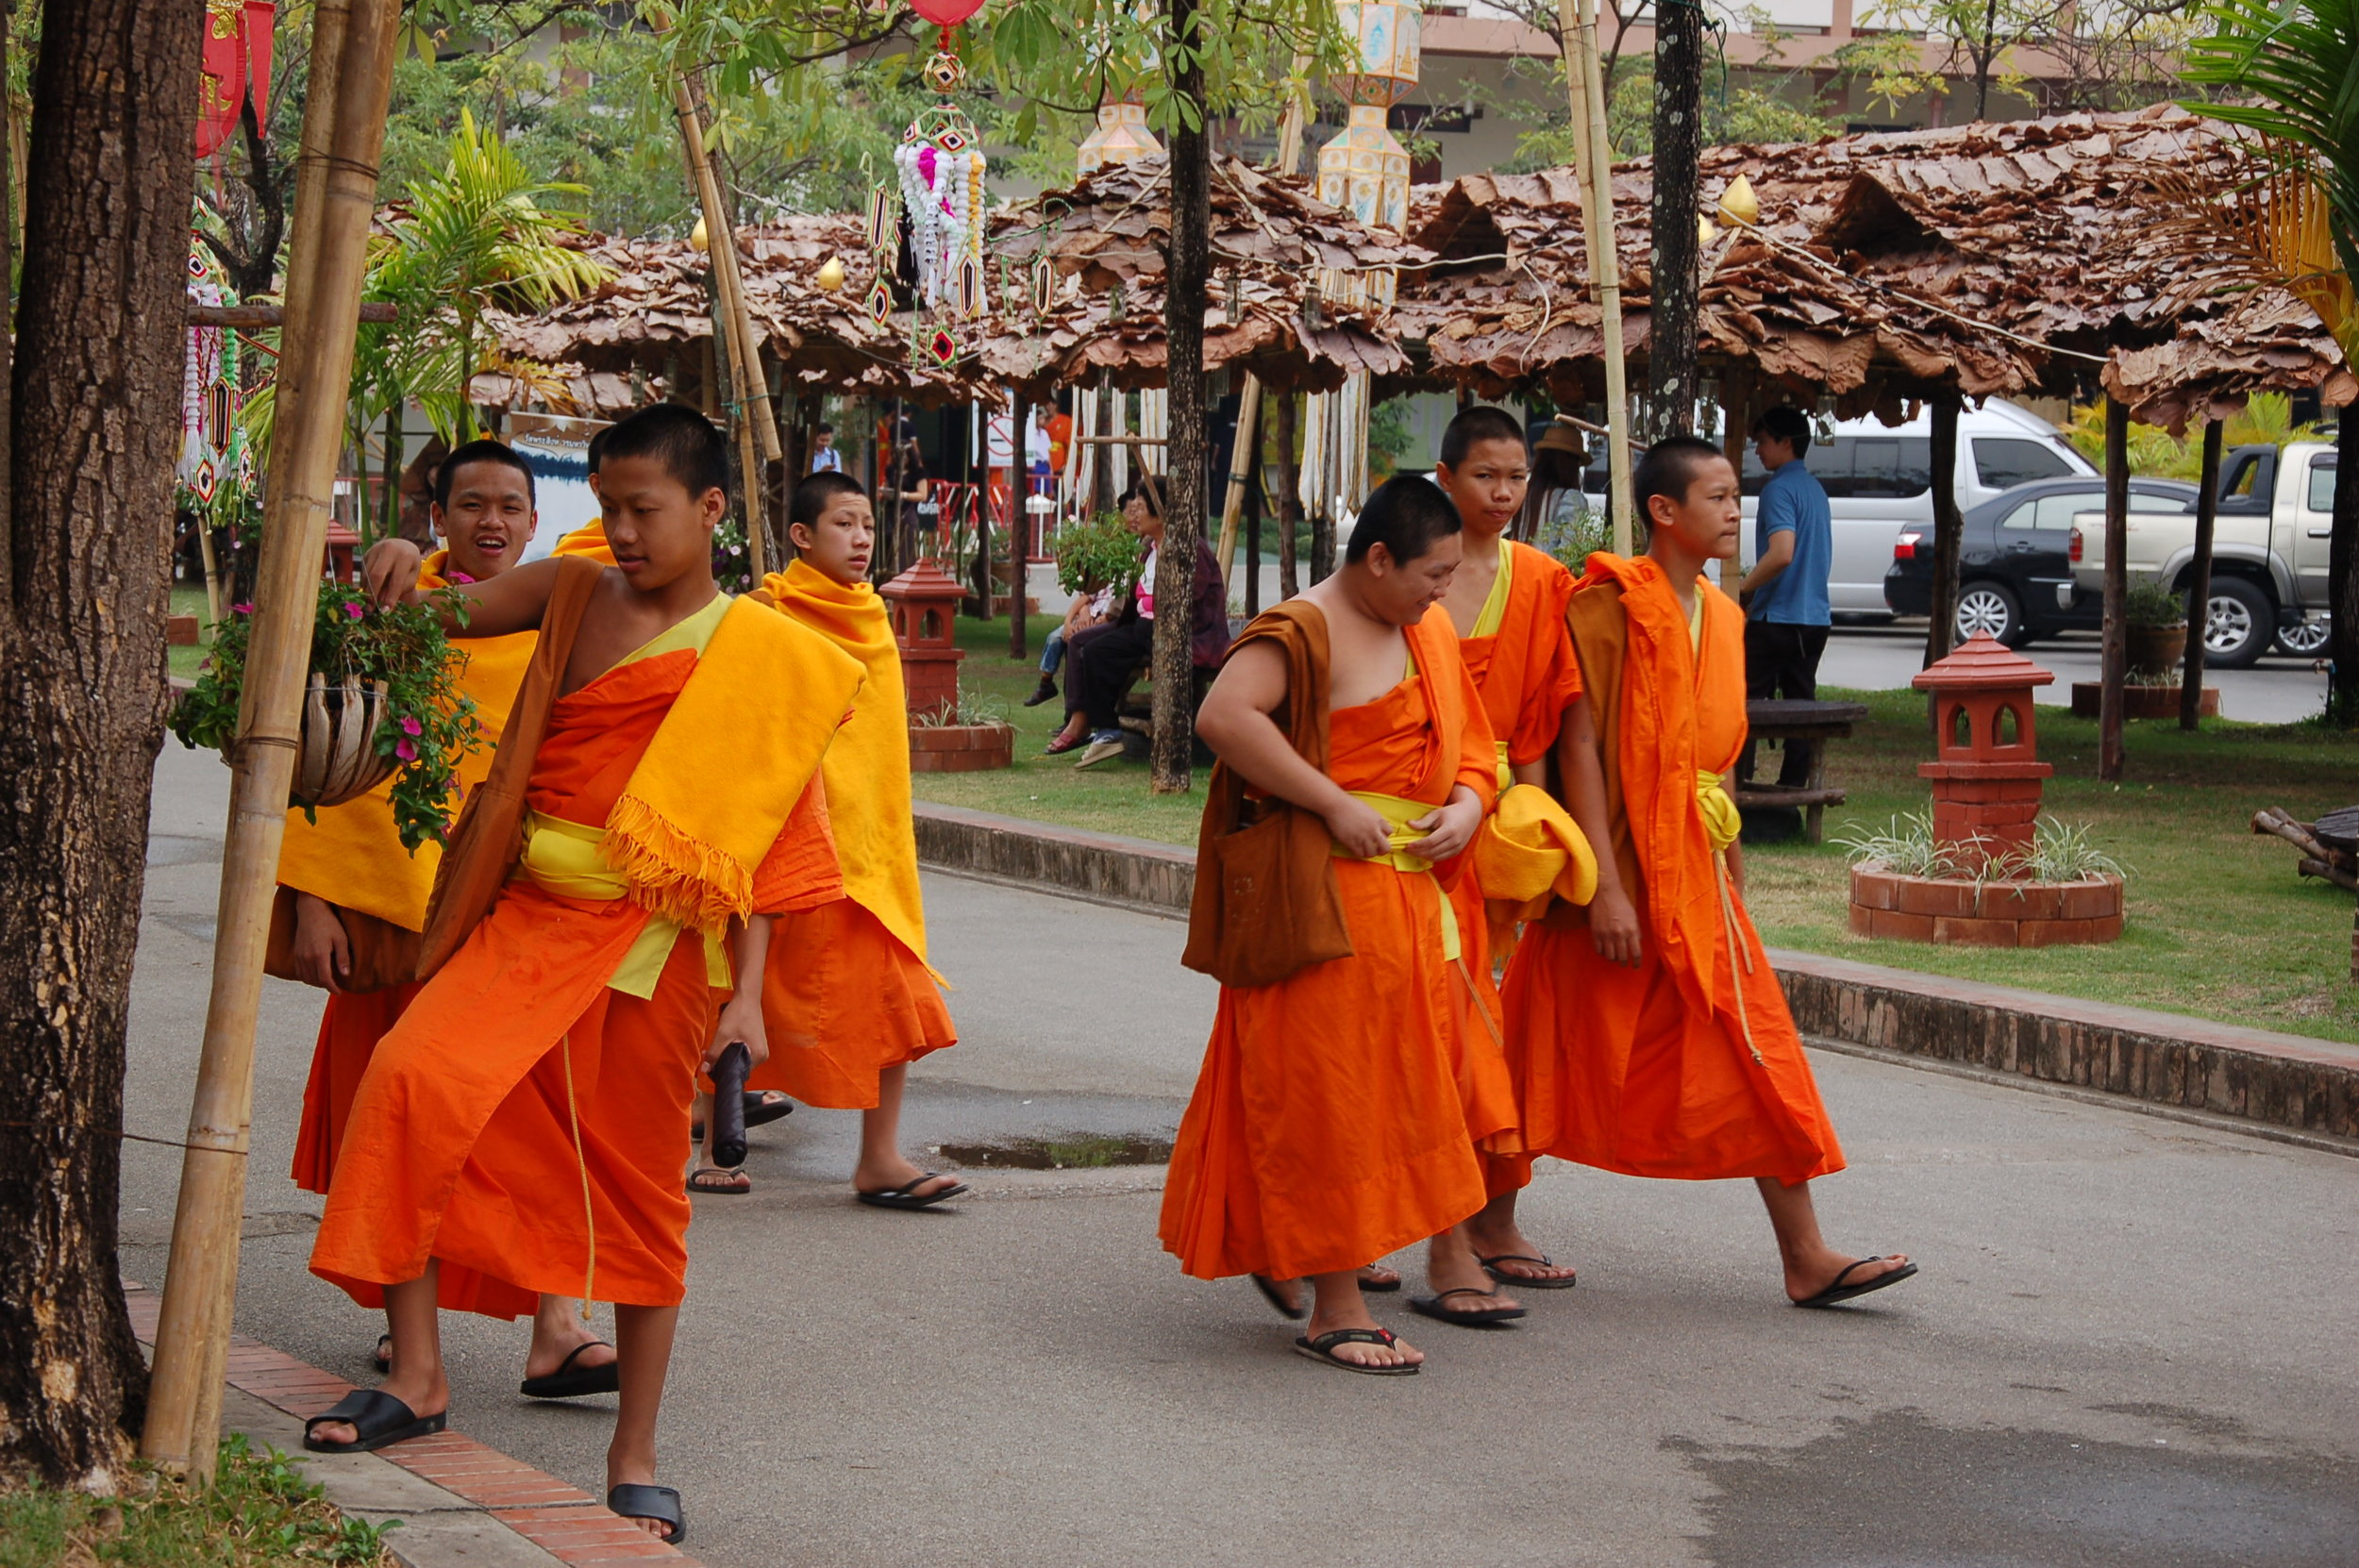 More than 700 monks attend school at Wat Phra Singh in Chiang Mai.